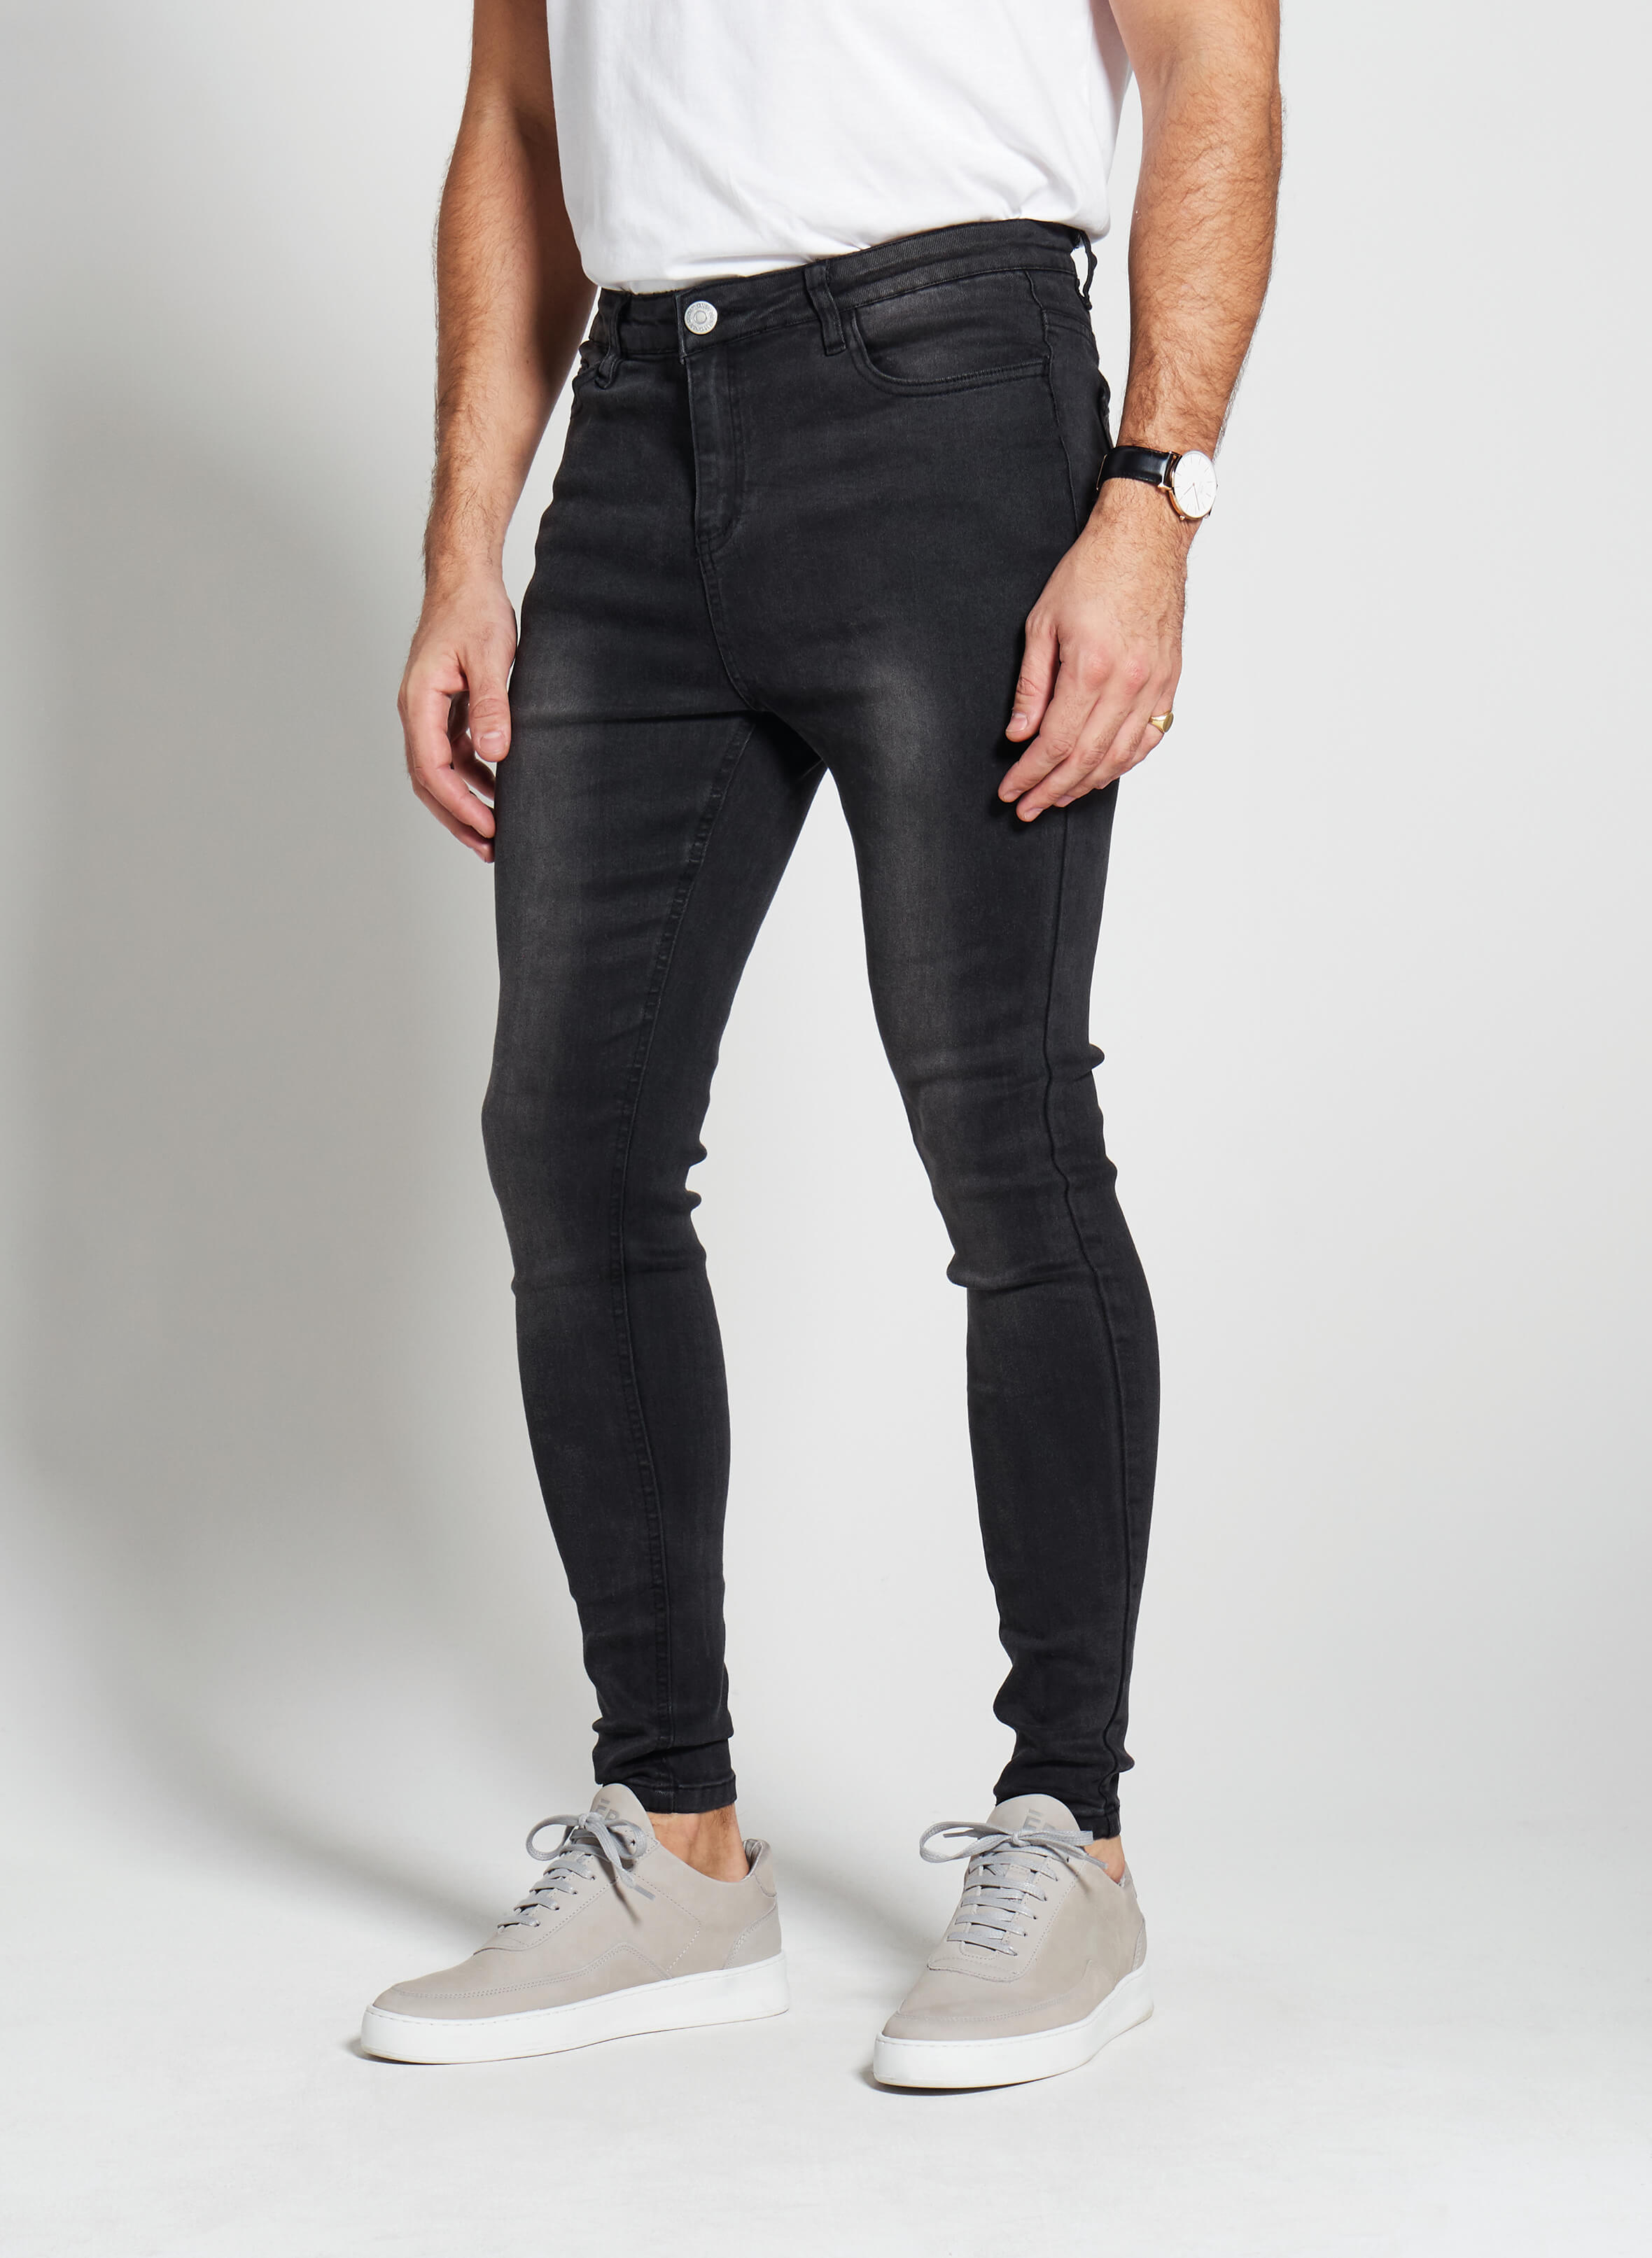 Denim Only® Spray On Jeans - Washed Black